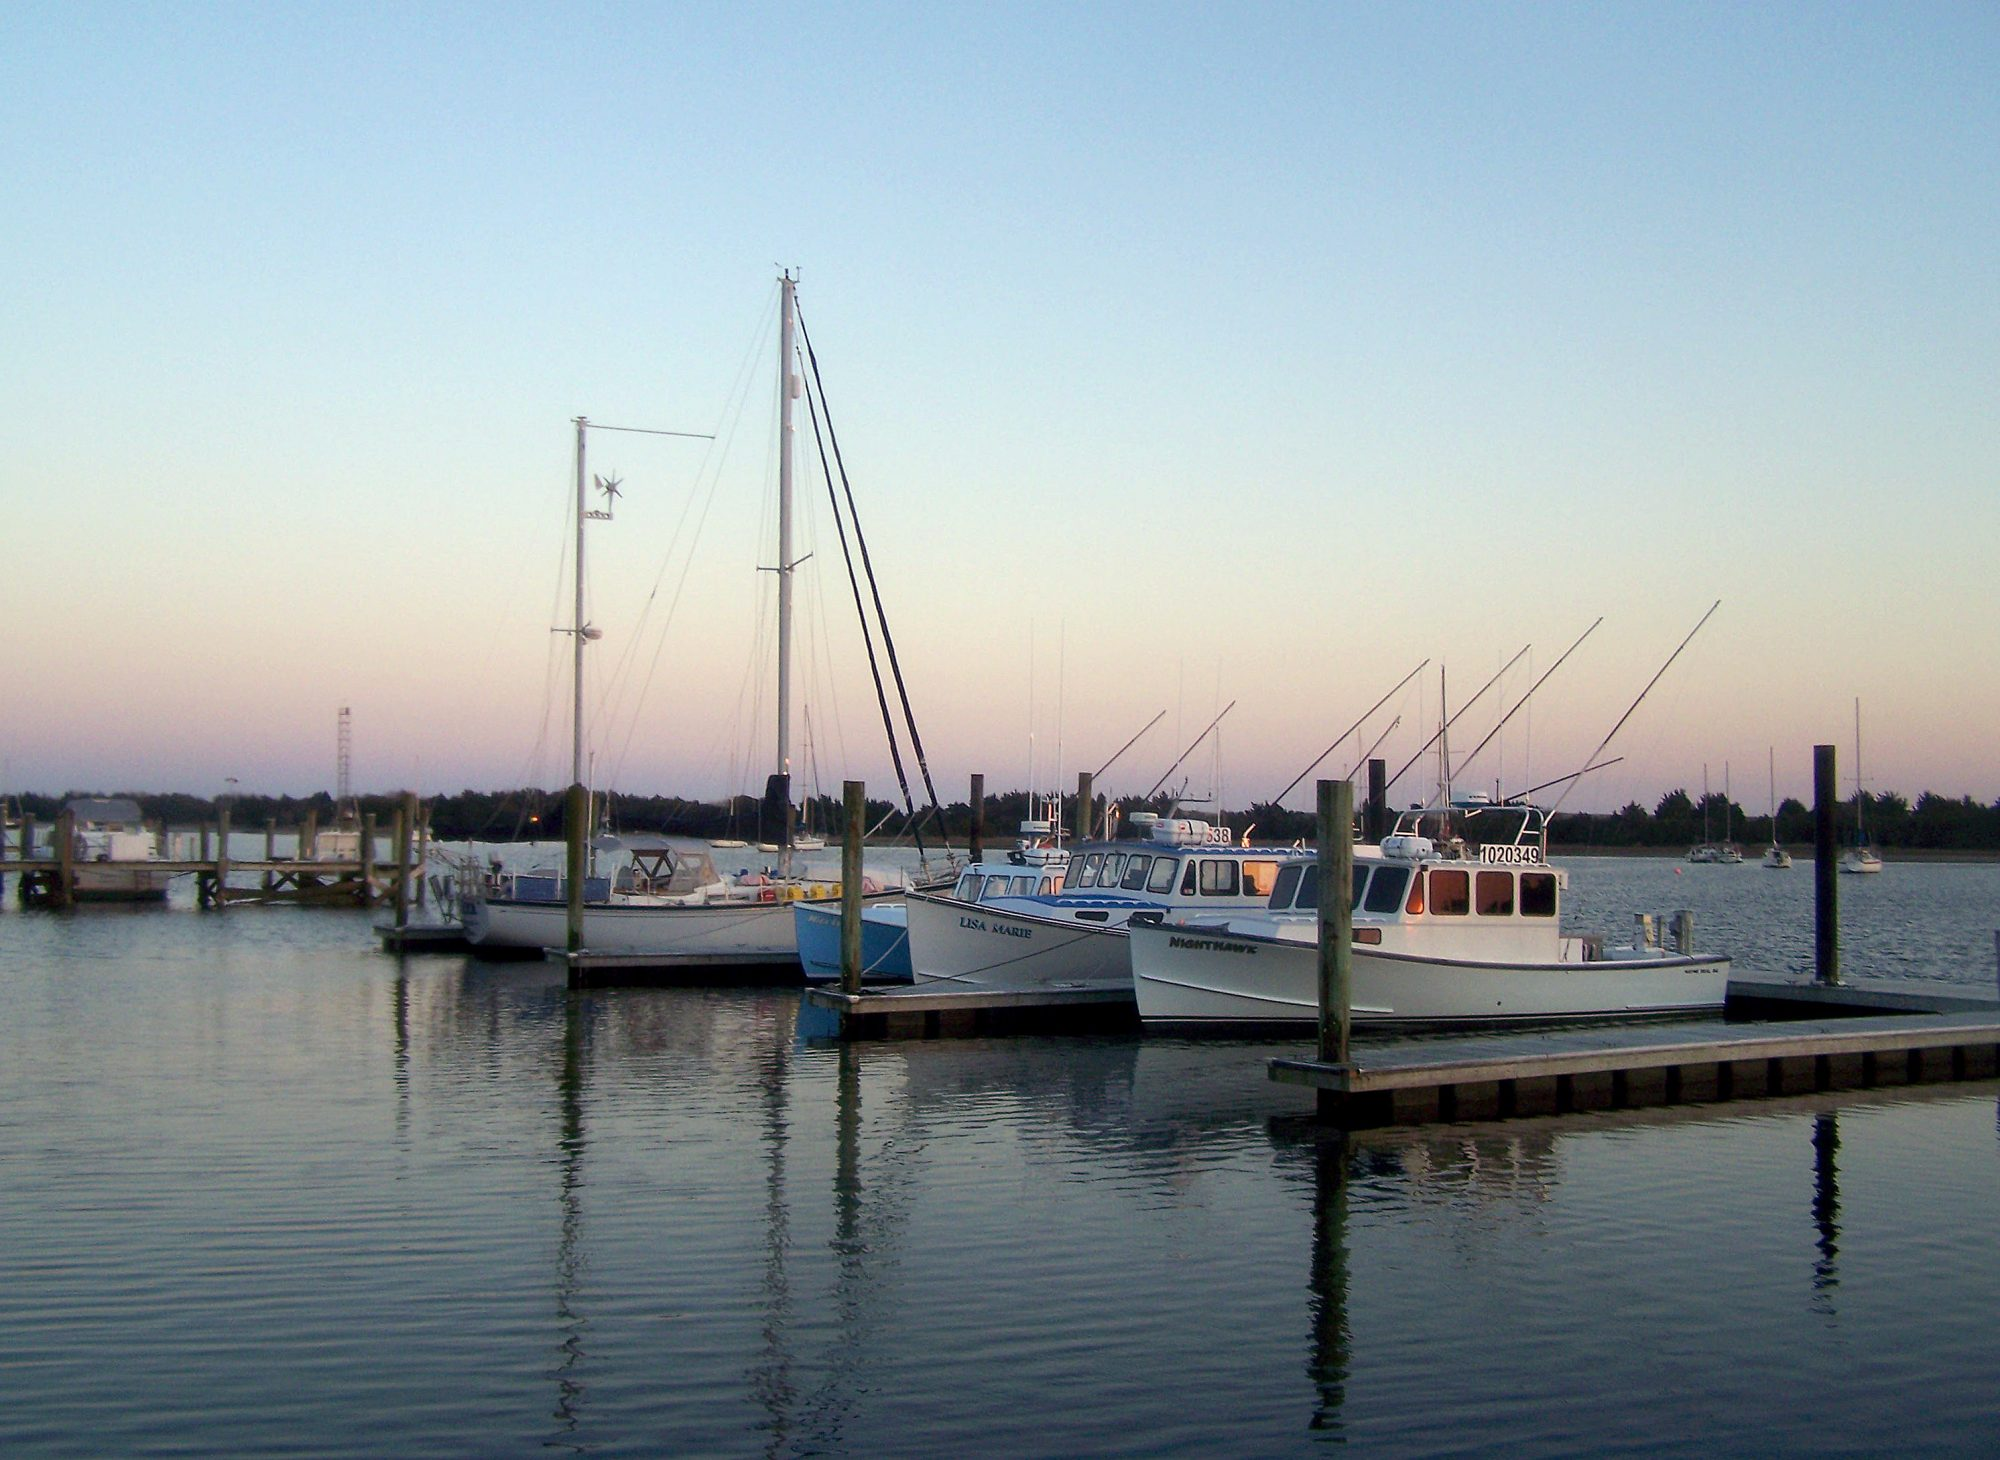 16. Beaufort, North Carolina